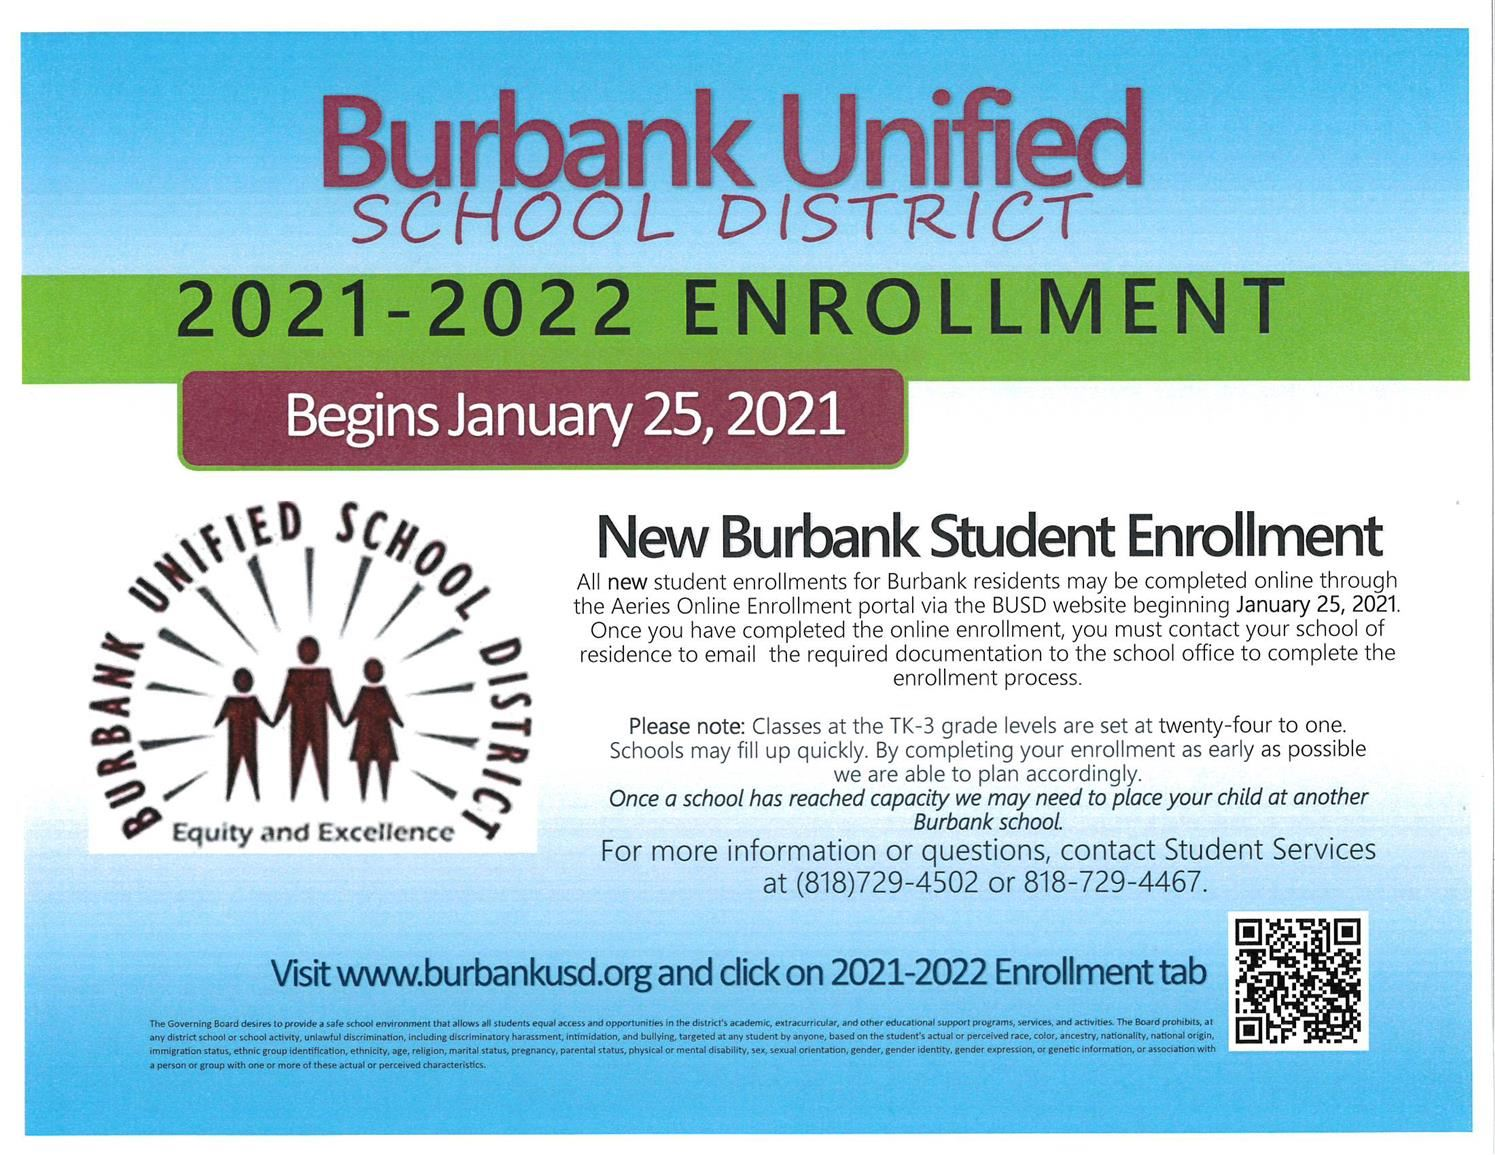 FOR 2021-2022 ENROLLMENT INFORMATION PLEASE CLICK HERE